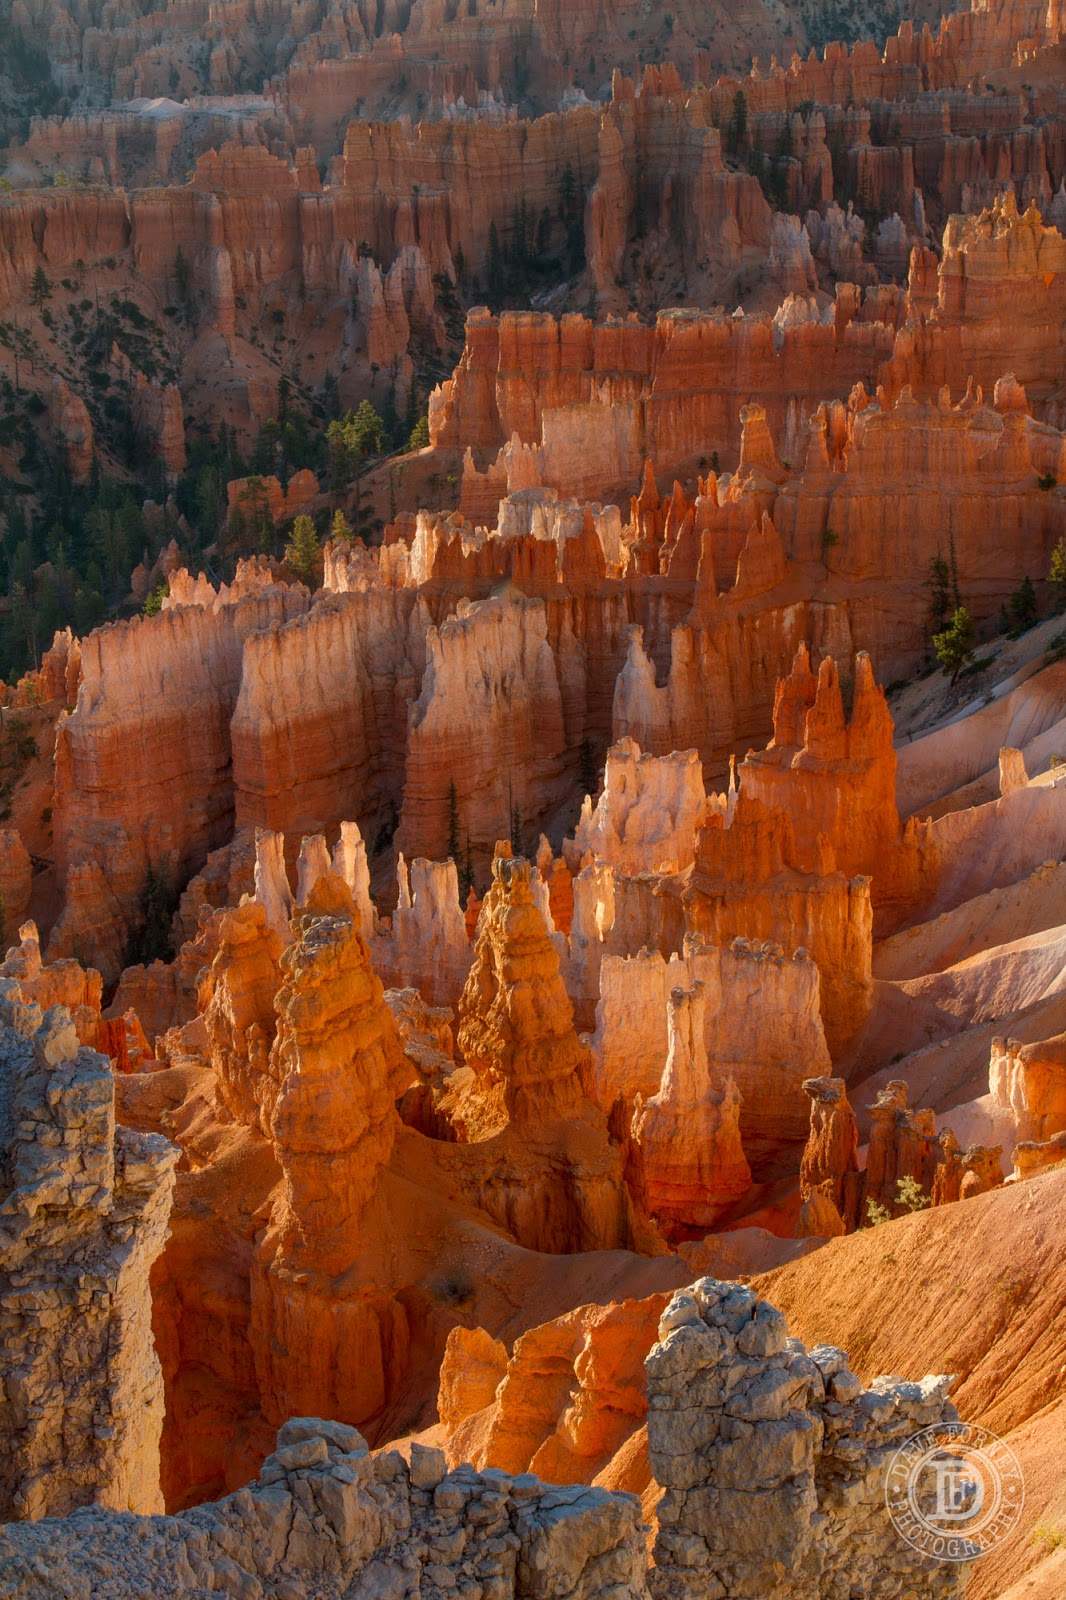 bryce canyon national park senior personals Lodging and services are available on the gorgeous east side of zion national park, where guests are close to zion national park (12 miles), bryce canyon national park (60 miles), cedar breaks national monument (45 miles), coral pink sand dunes (12 miles), and the north rim of the grand canyon (85 miles.